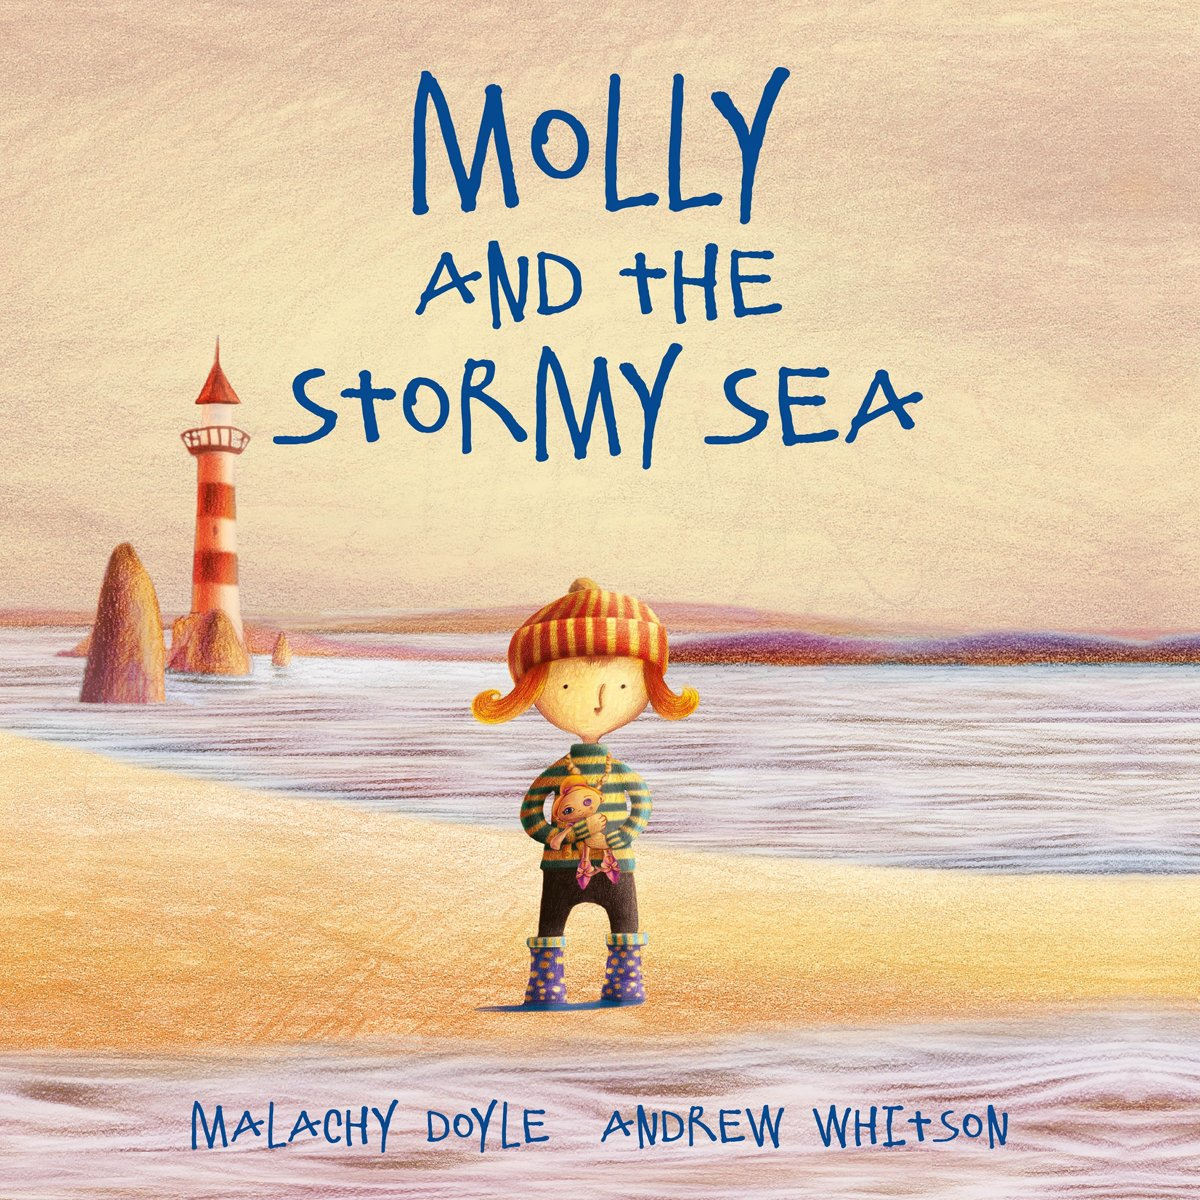 Molly and the Stormy Sea